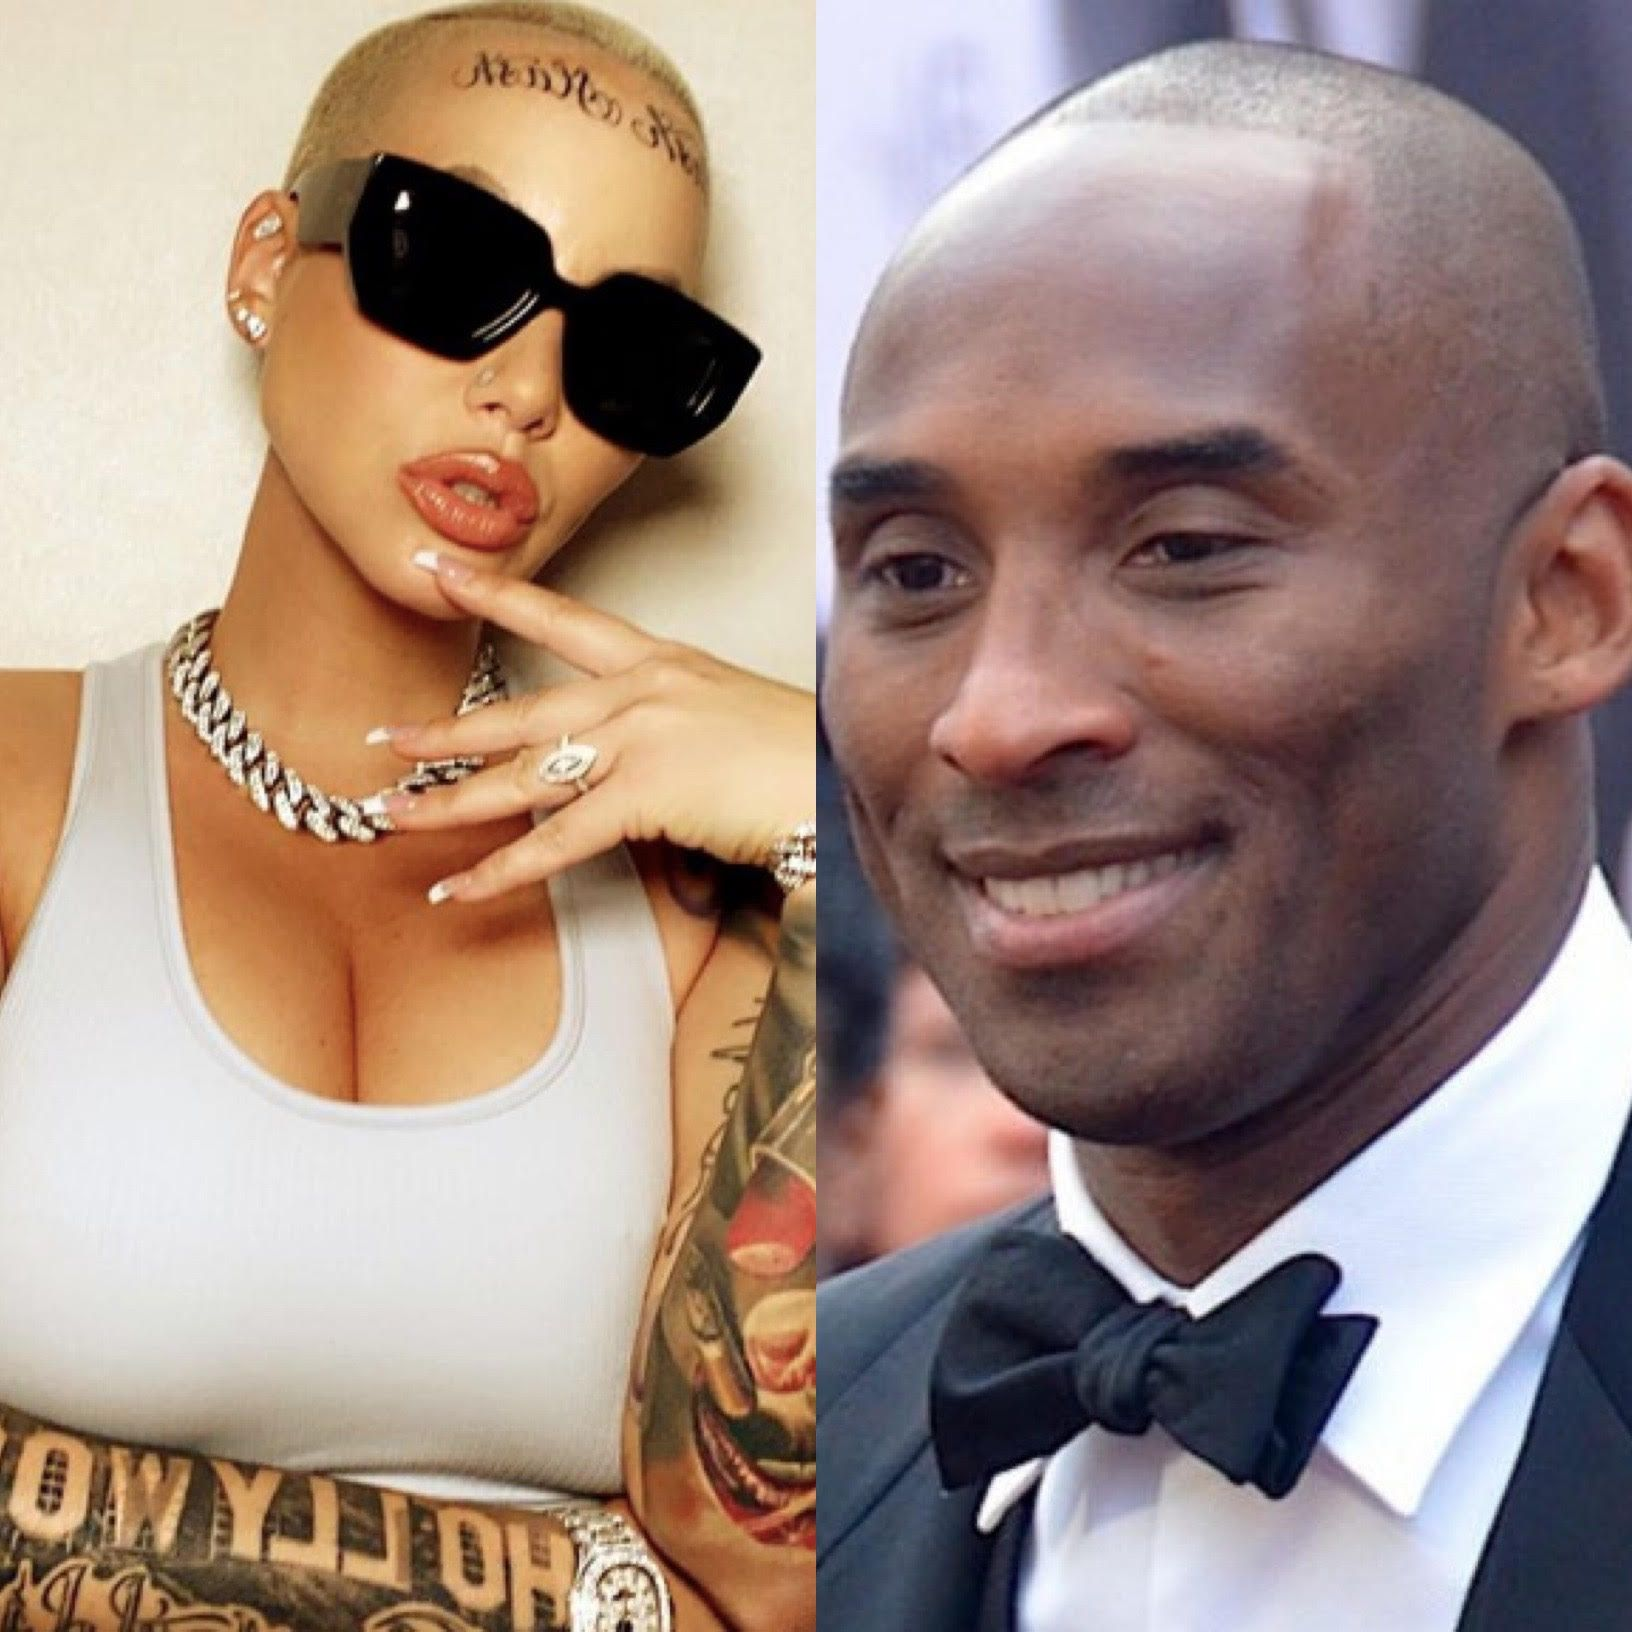 Amber Rose New Face Tattoo